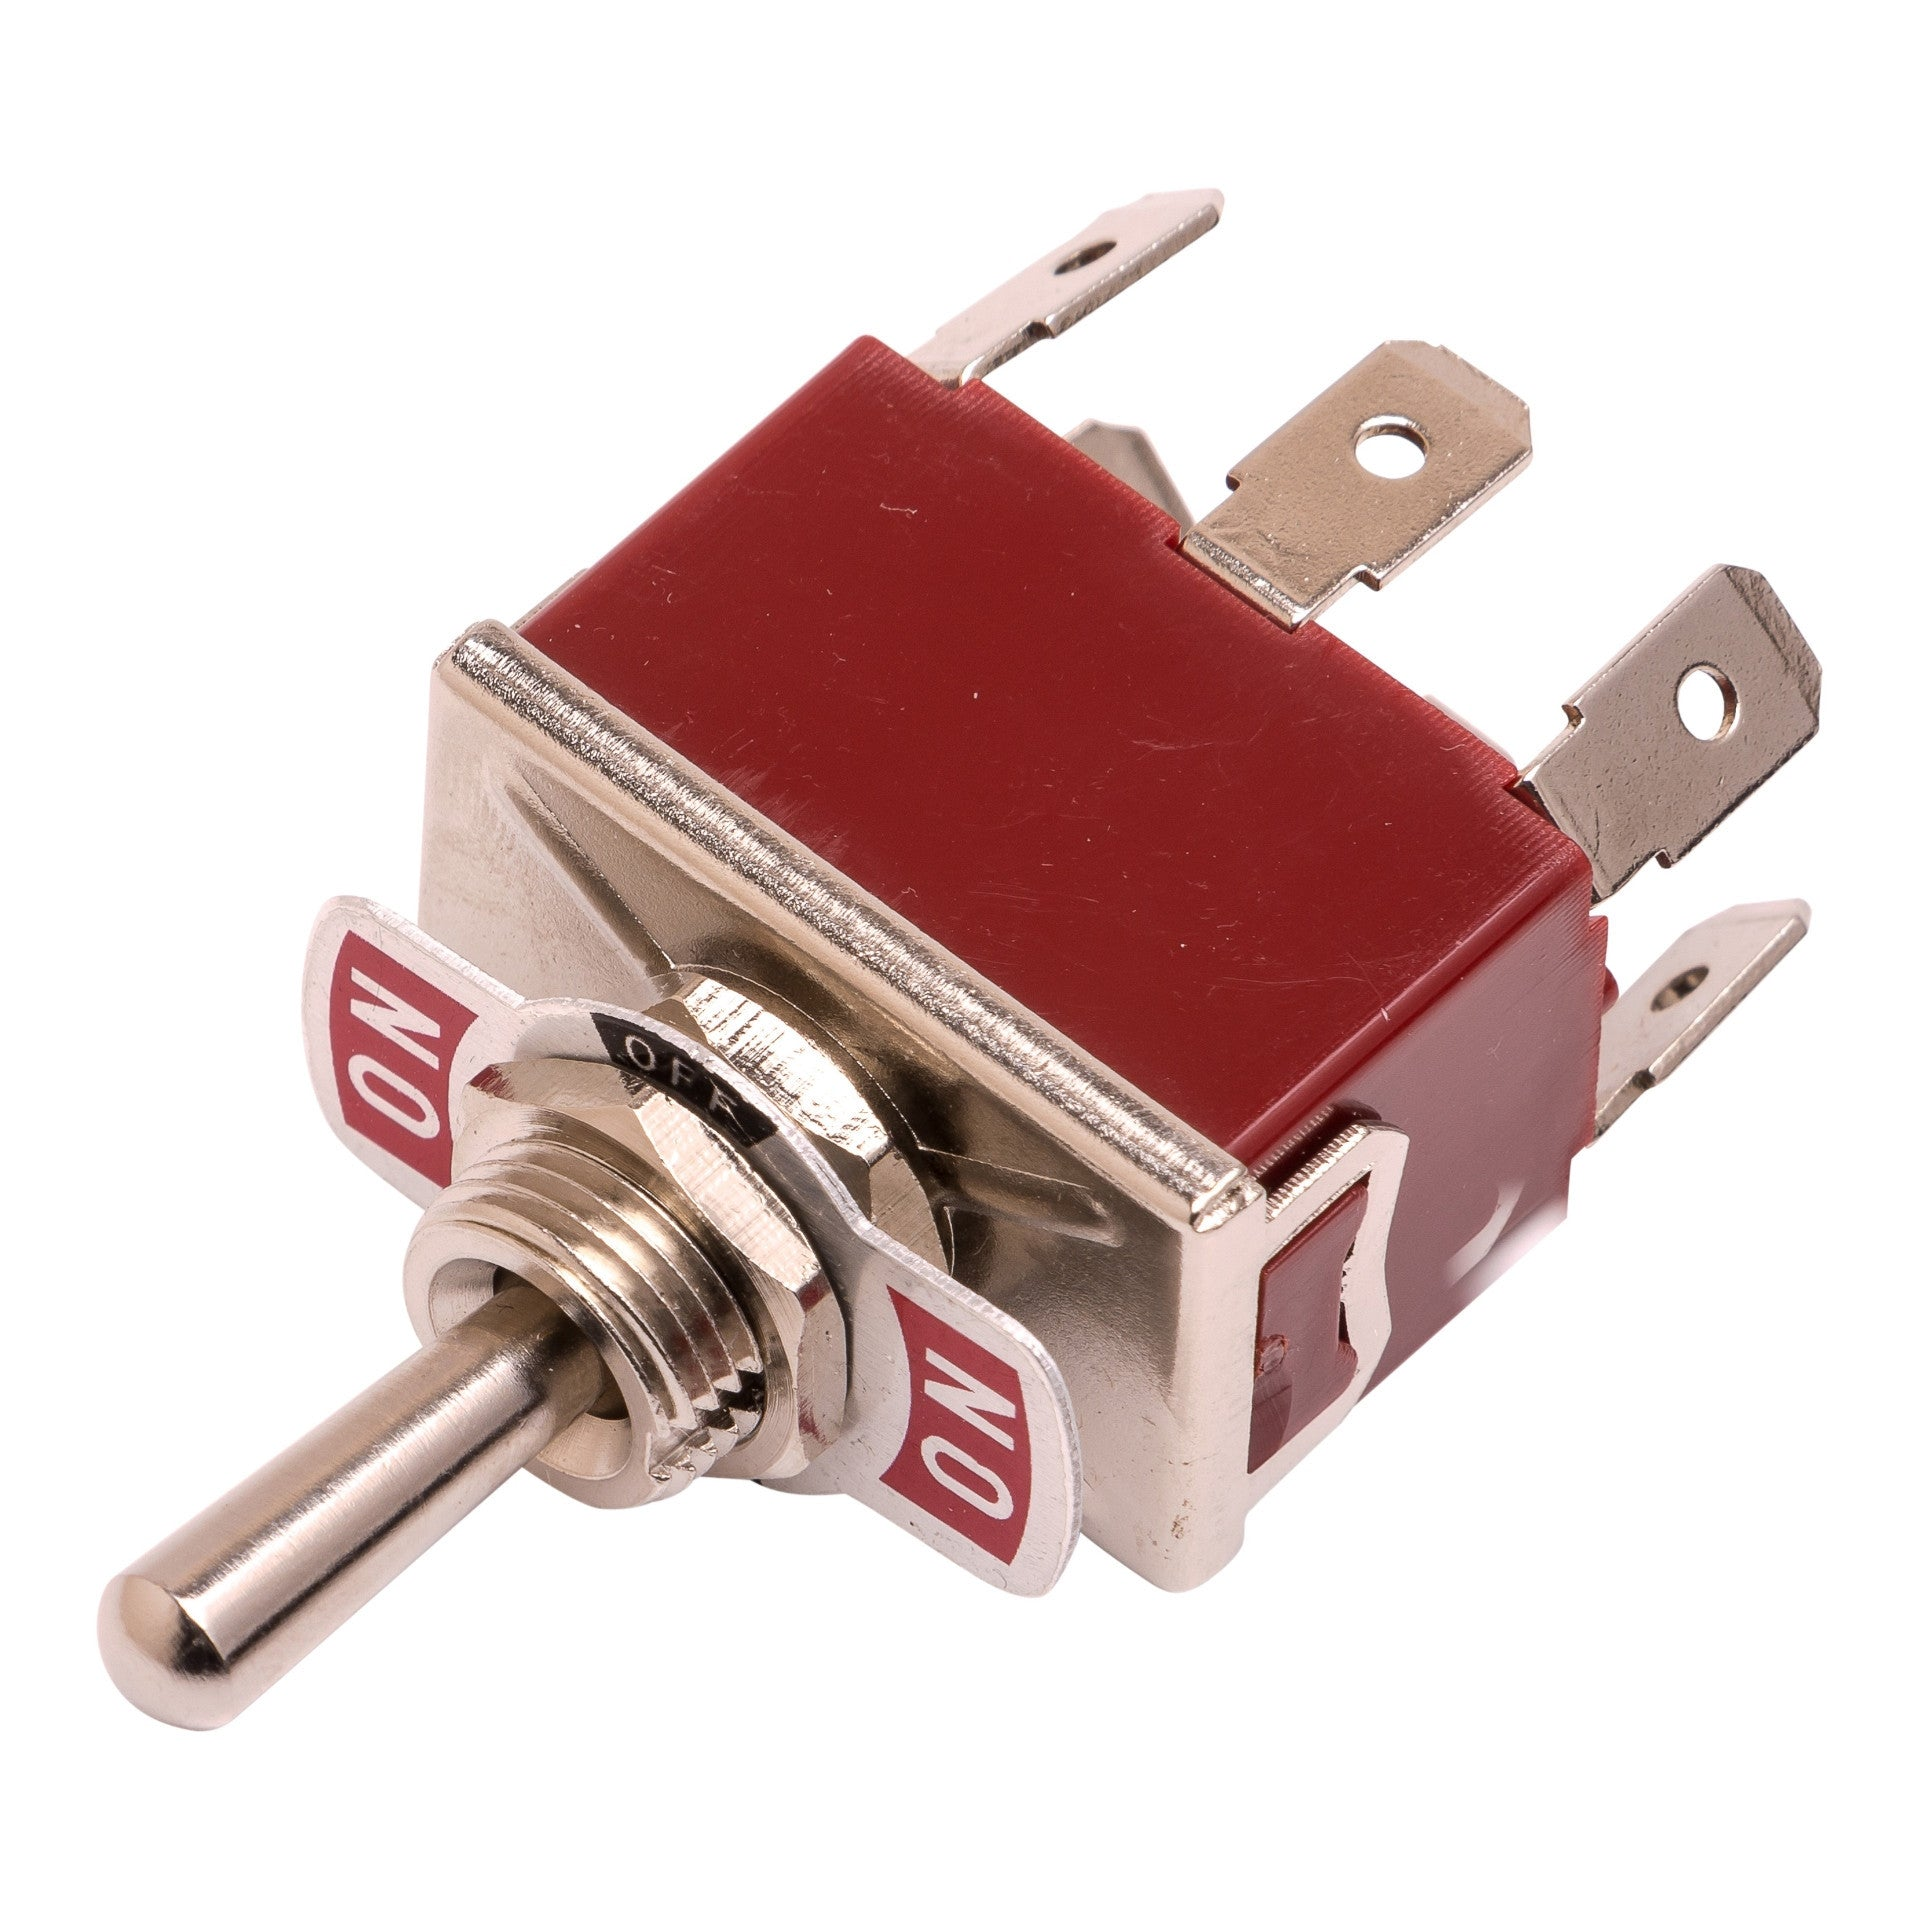 Toggle Switch For Actuators Or Motors Dpdt Of Momentary Switches Spst Should Only Require Two Terminals